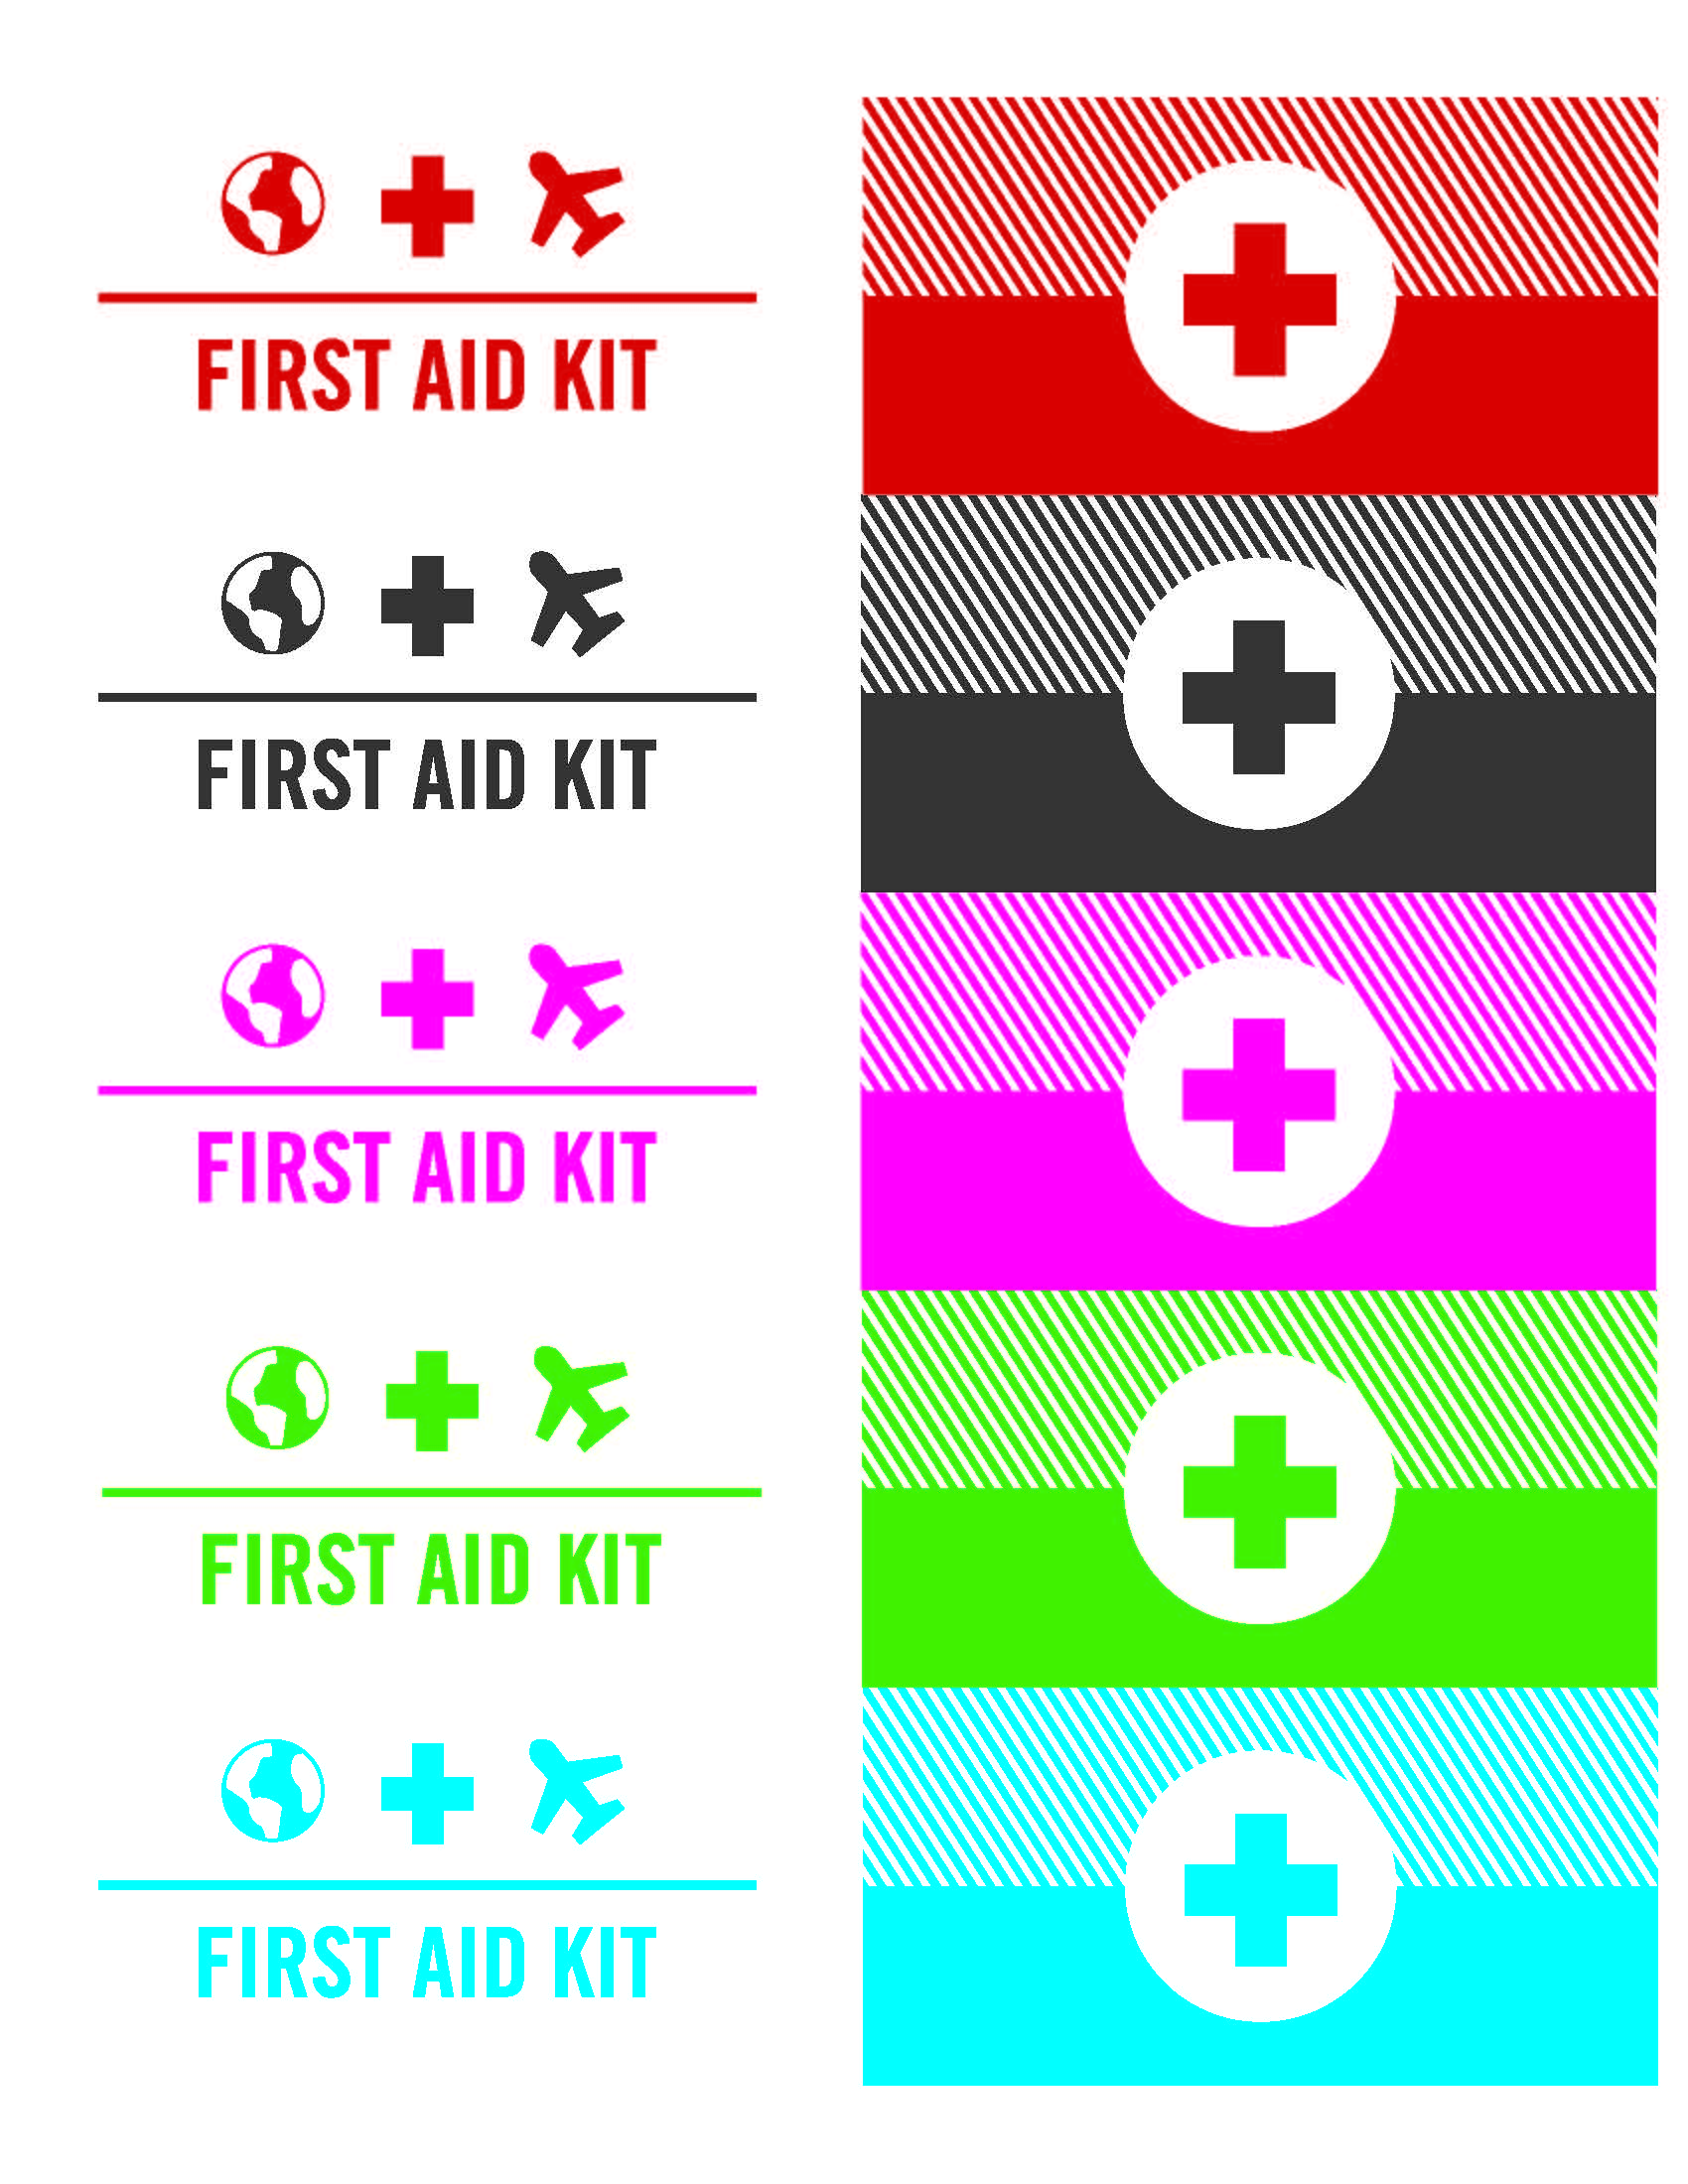 graphic regarding Printable Pocket First Aid Guide named Do-it-yourself mini drive 1st assistance package, what towards pack and how toward deliver it